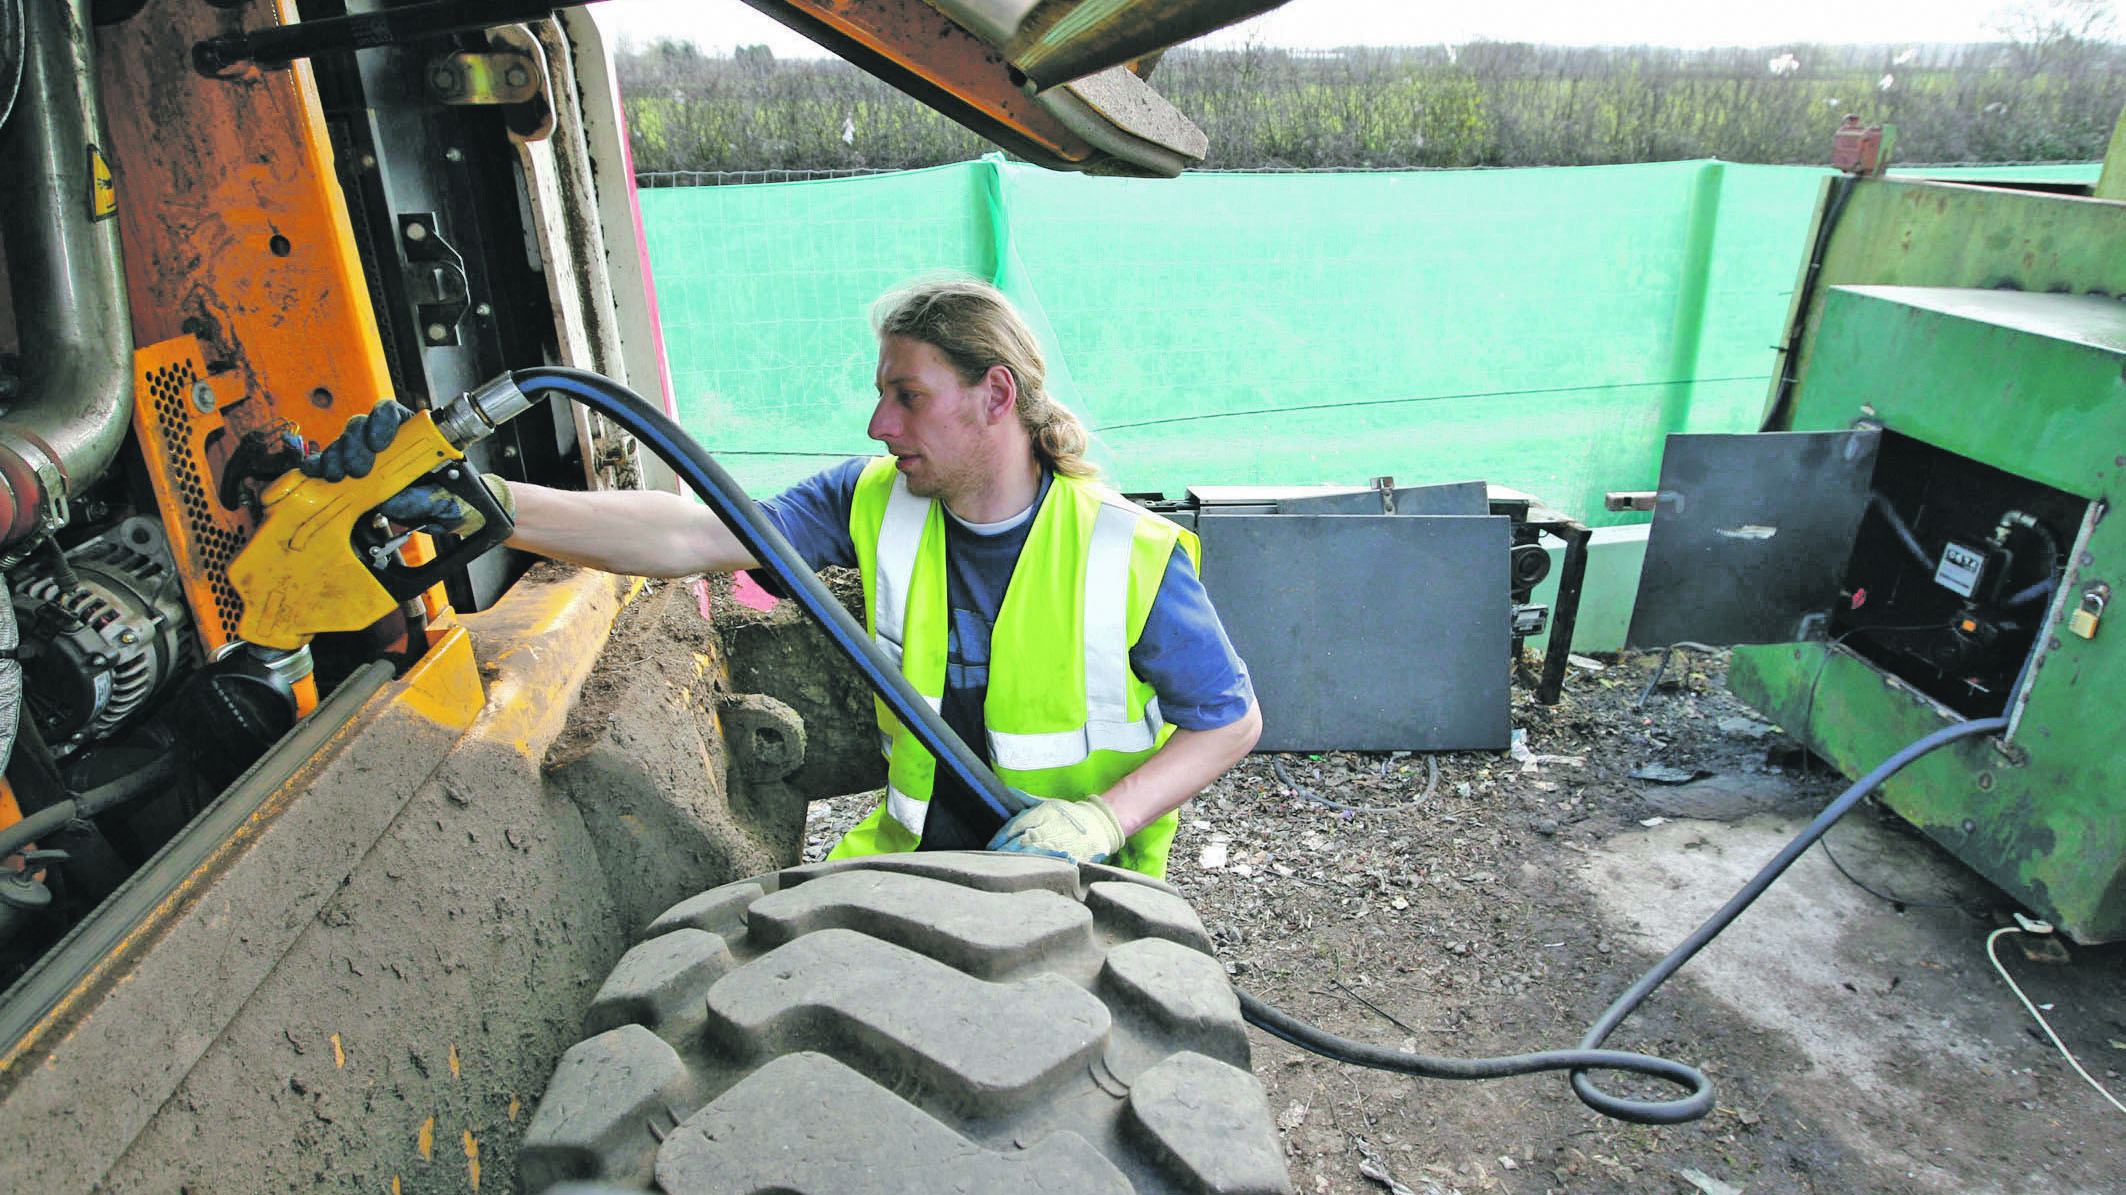 New fuel storage regulations could hit Welsh farmers